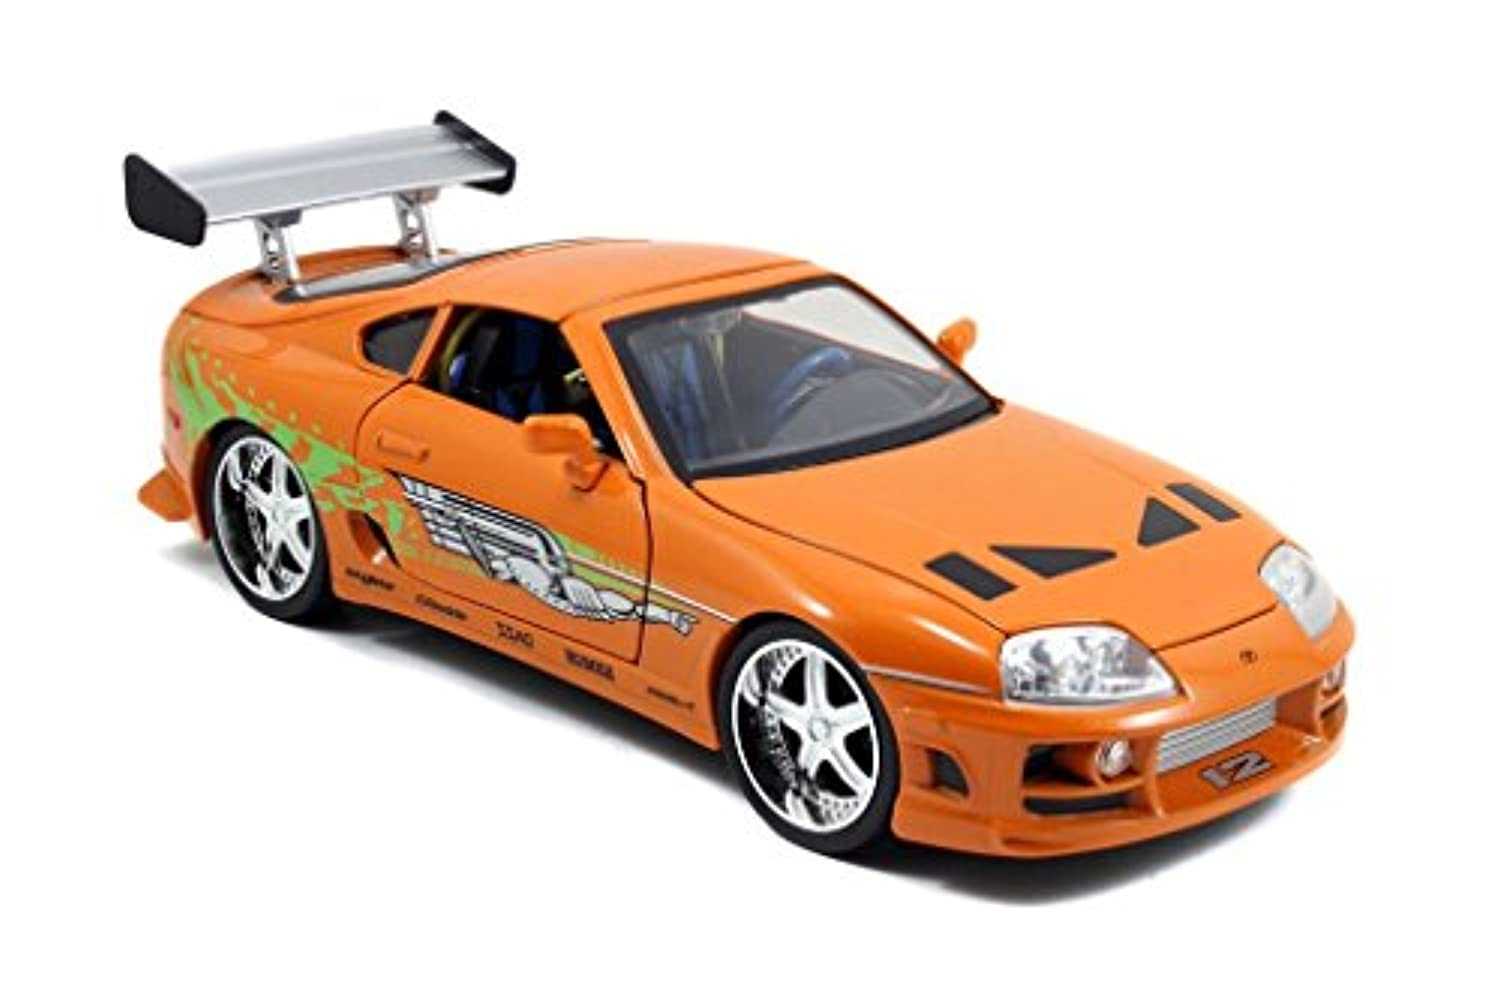 Jada Toys Fast & Furious Toyota Supra 1:18 Diecast Vehicle, Orange by Jada